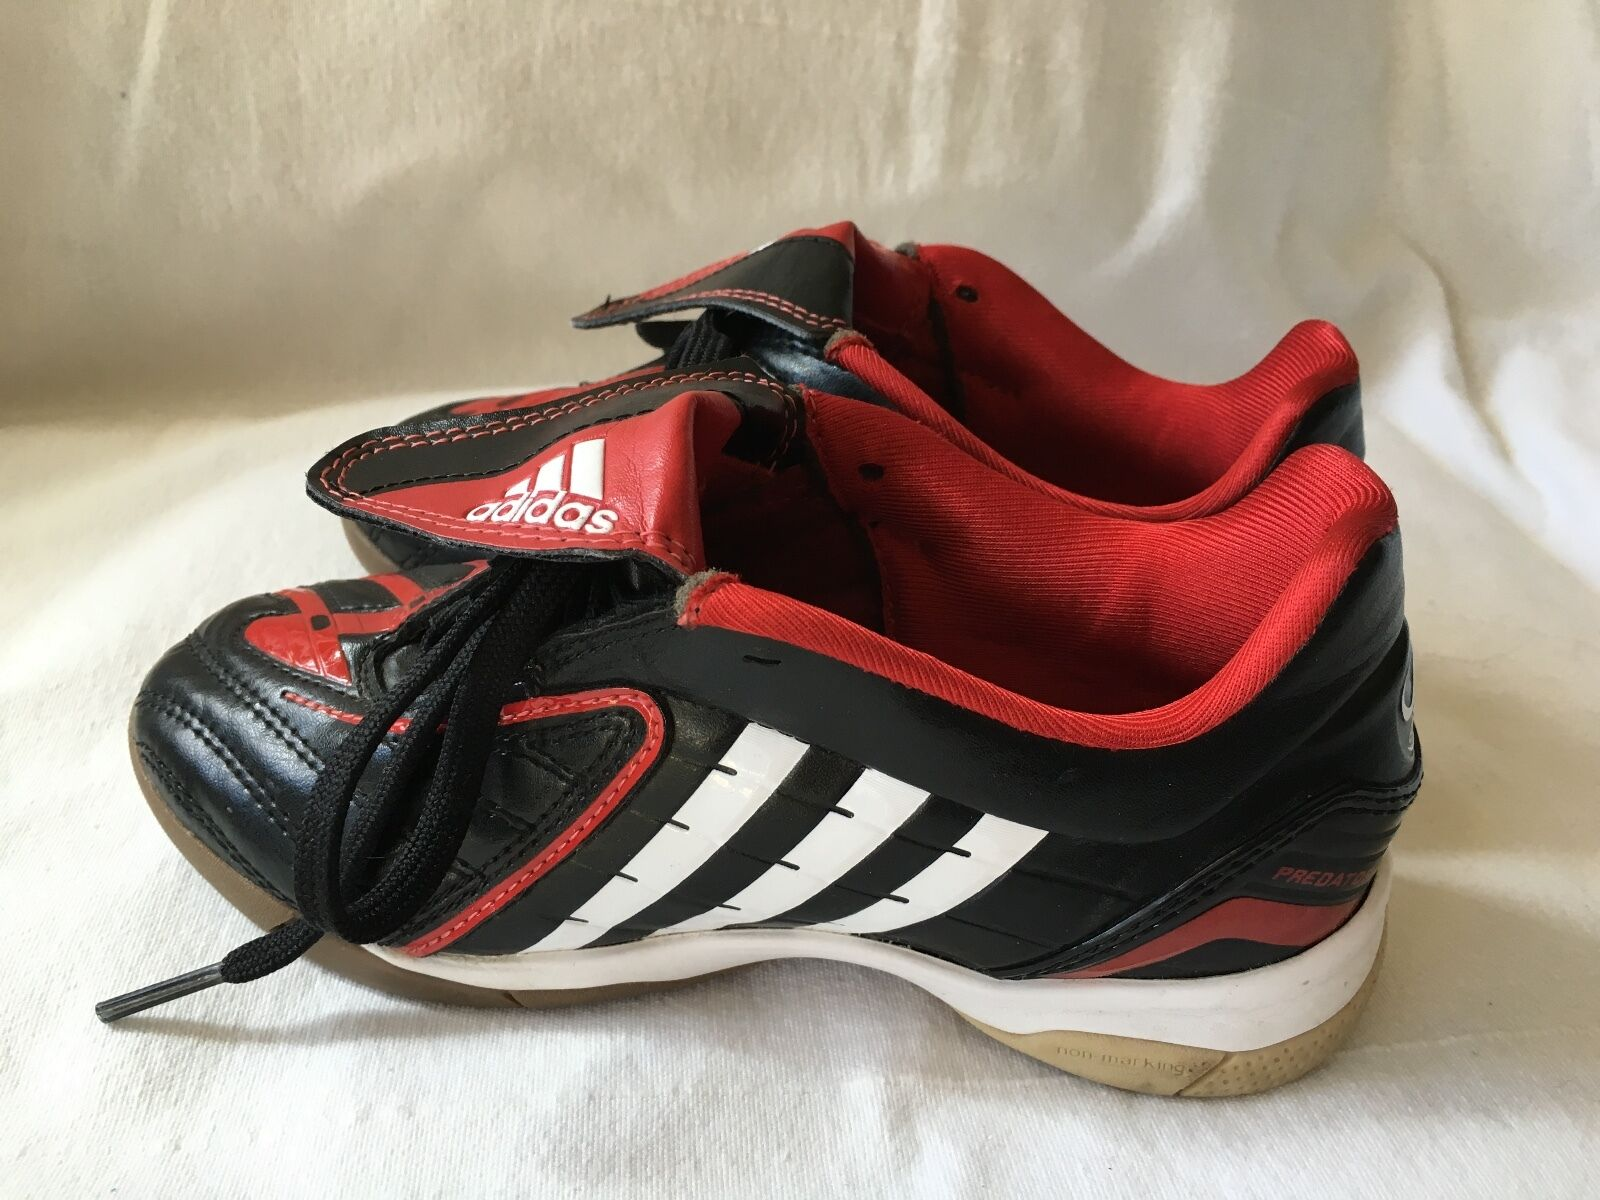 212959e29 ADIDAS Absolado Youth Kids soccer boots indoor shoes 048487-NEW-Size 13.5 US